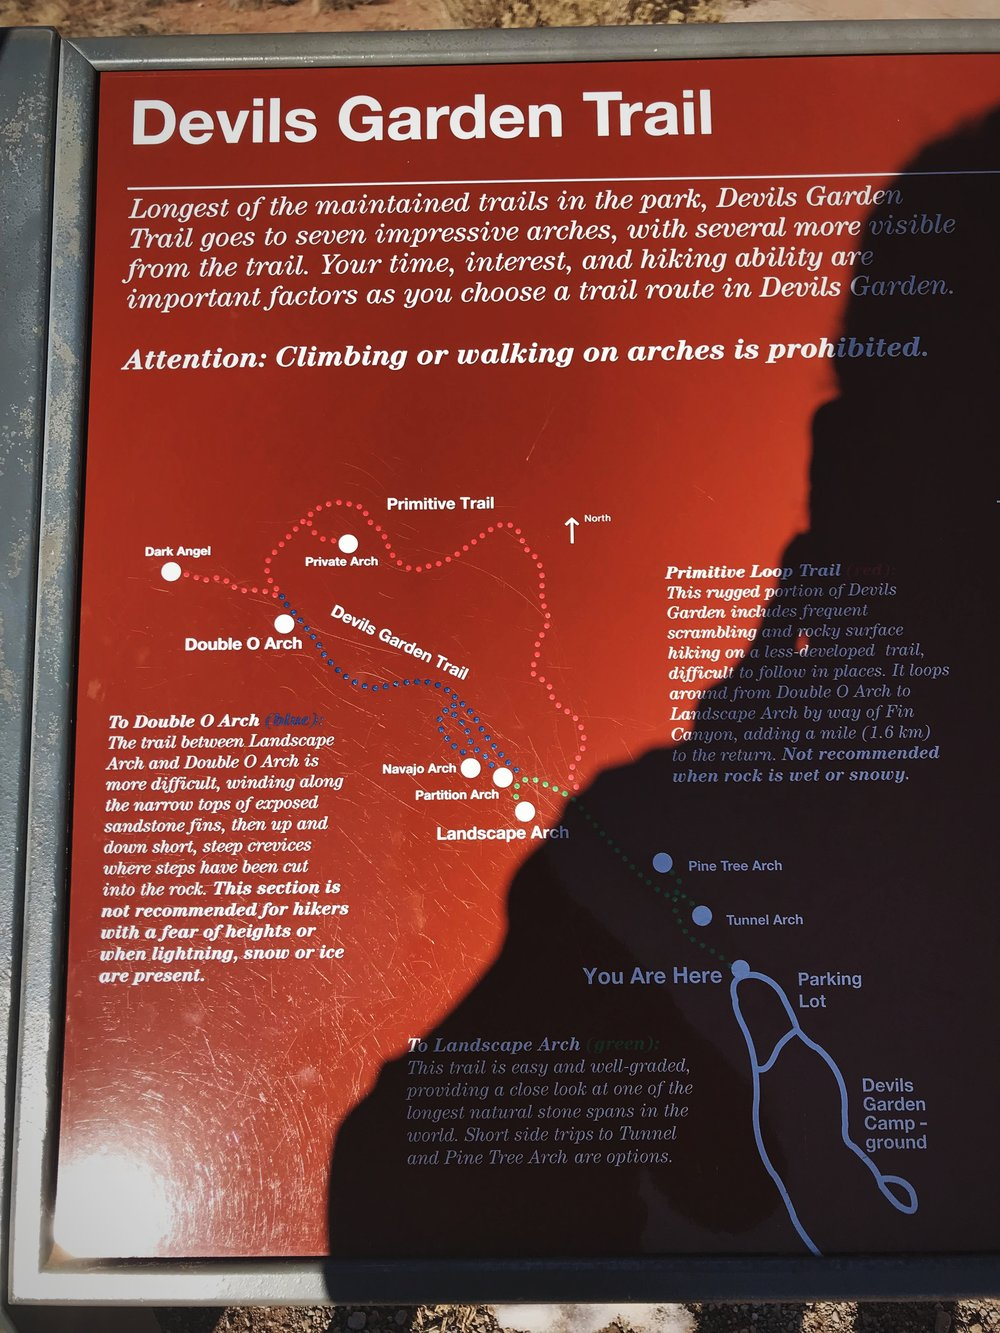 A map at the trailhead shows the arches that can be accessed along the Devils Garden Trail.